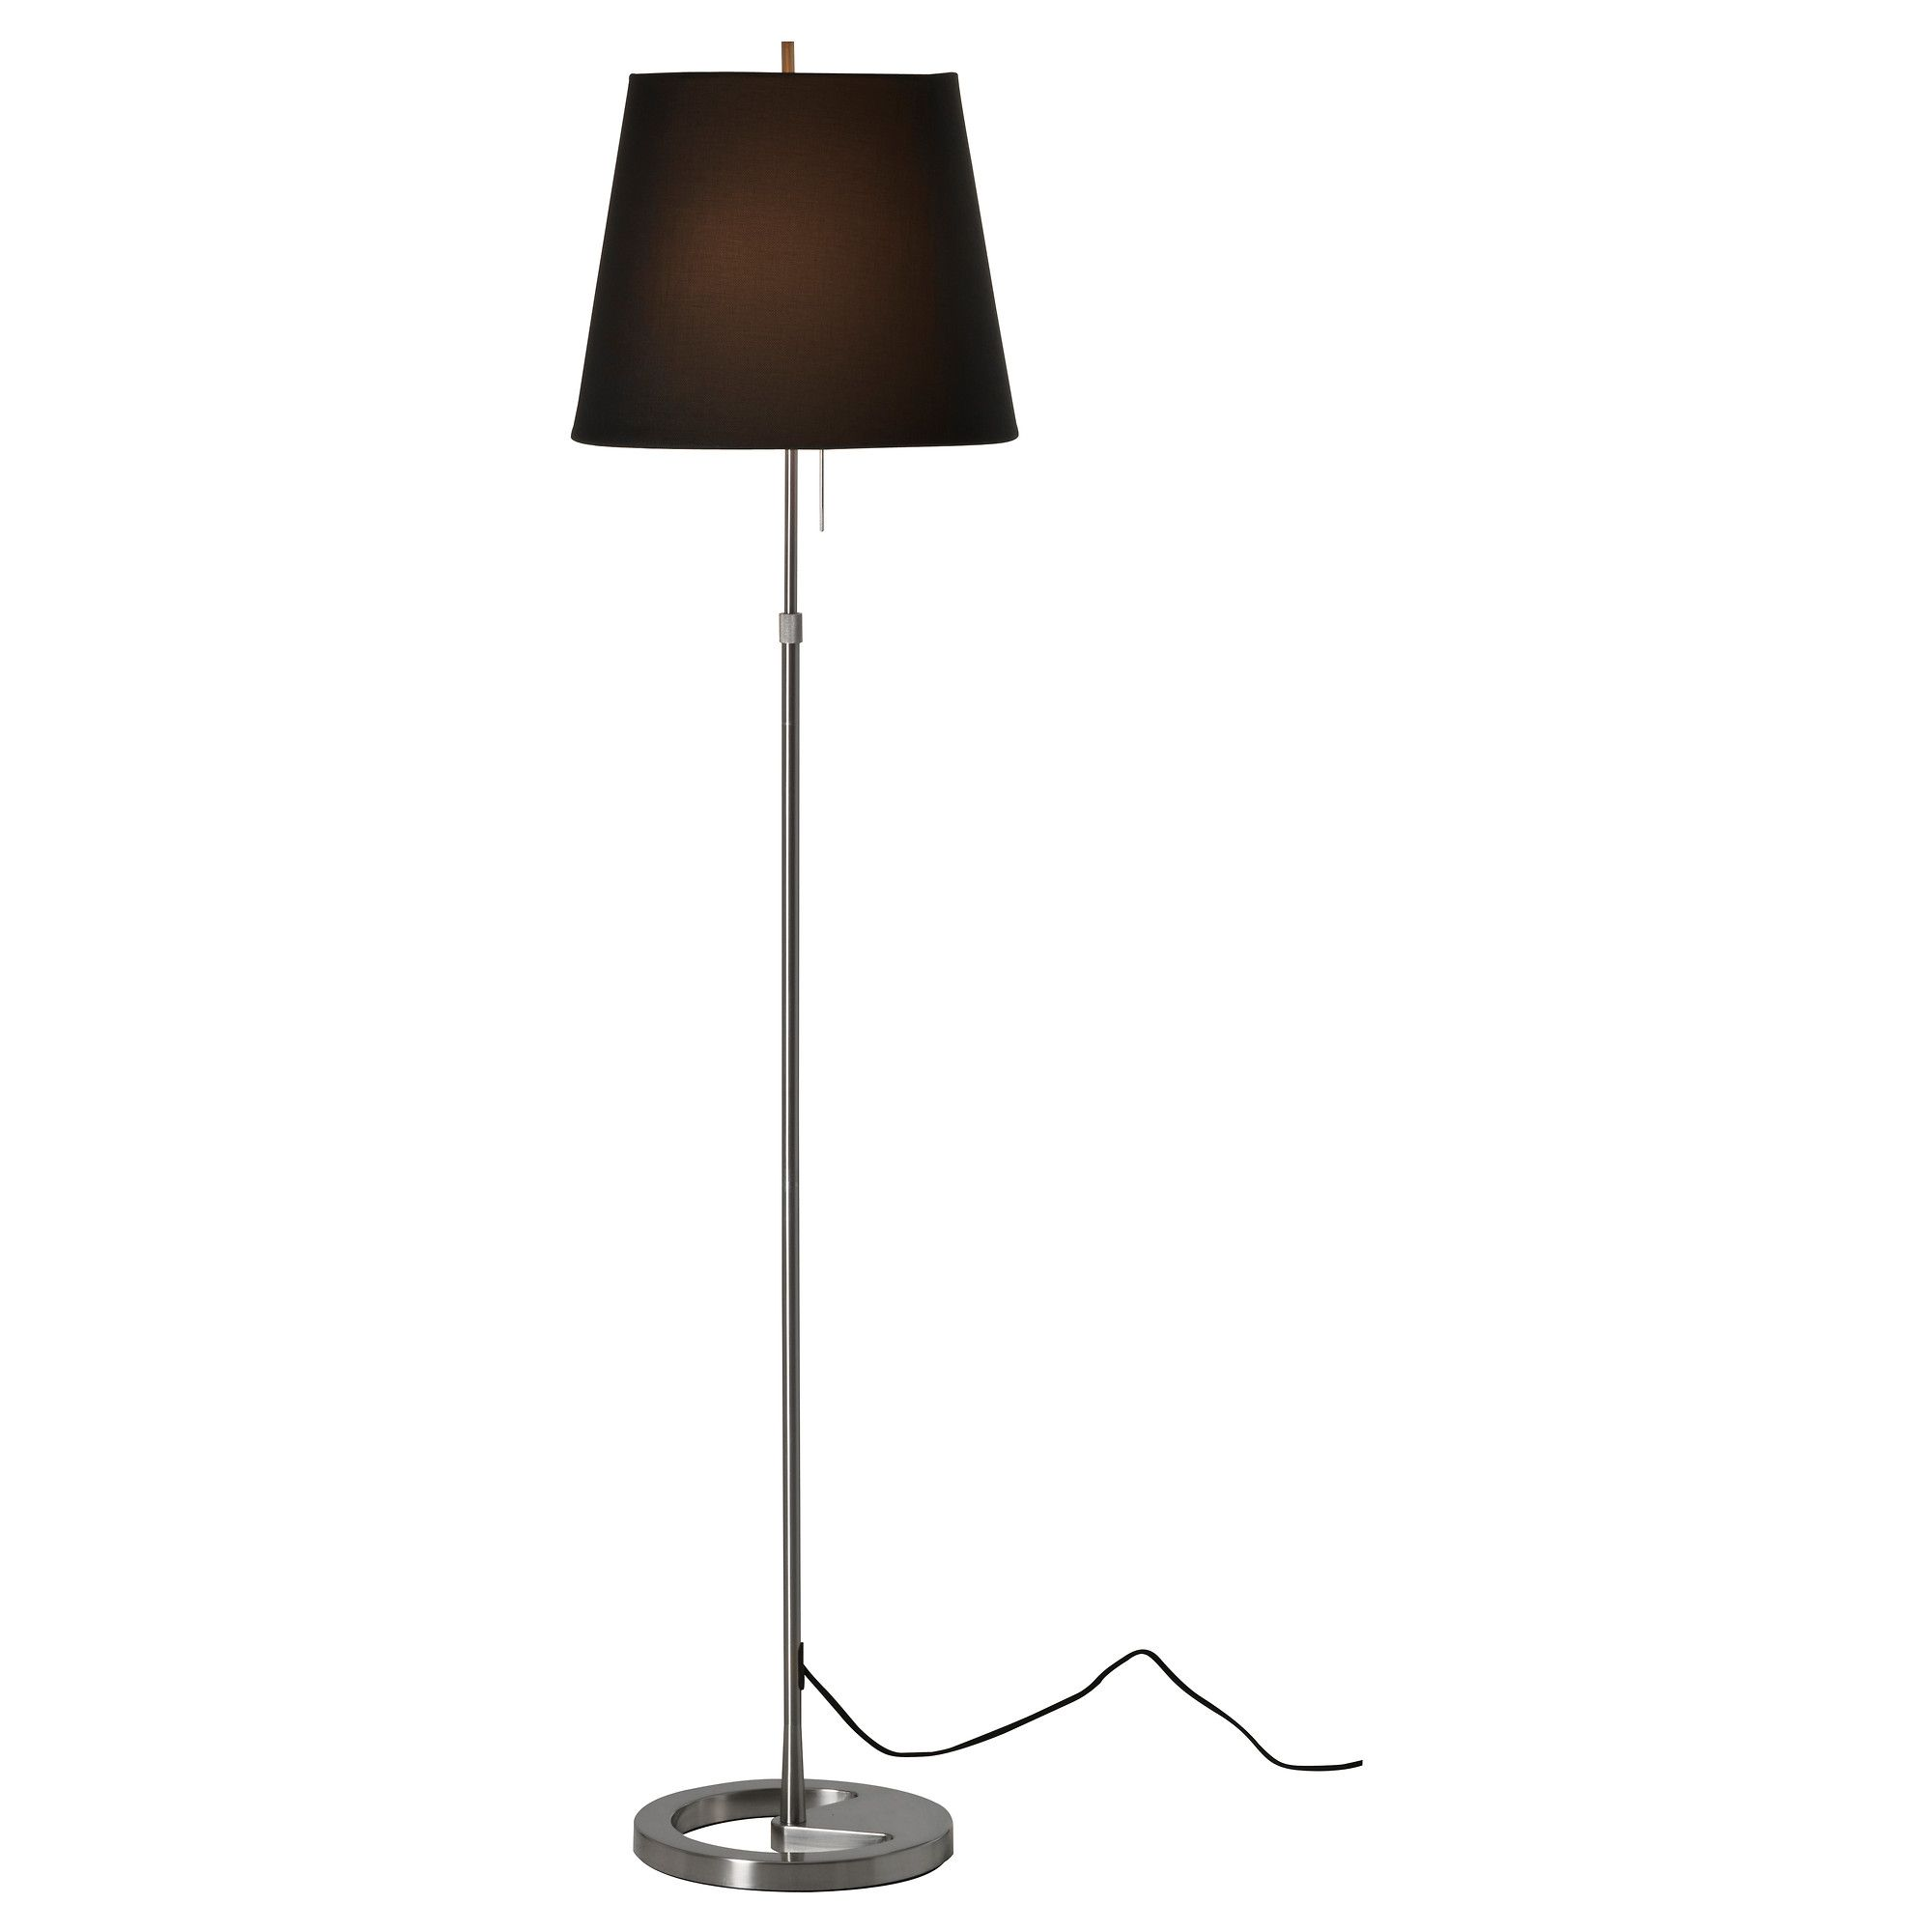 Us Furniture And Home Furnishings Unique Floor Lamps Floor Lamp